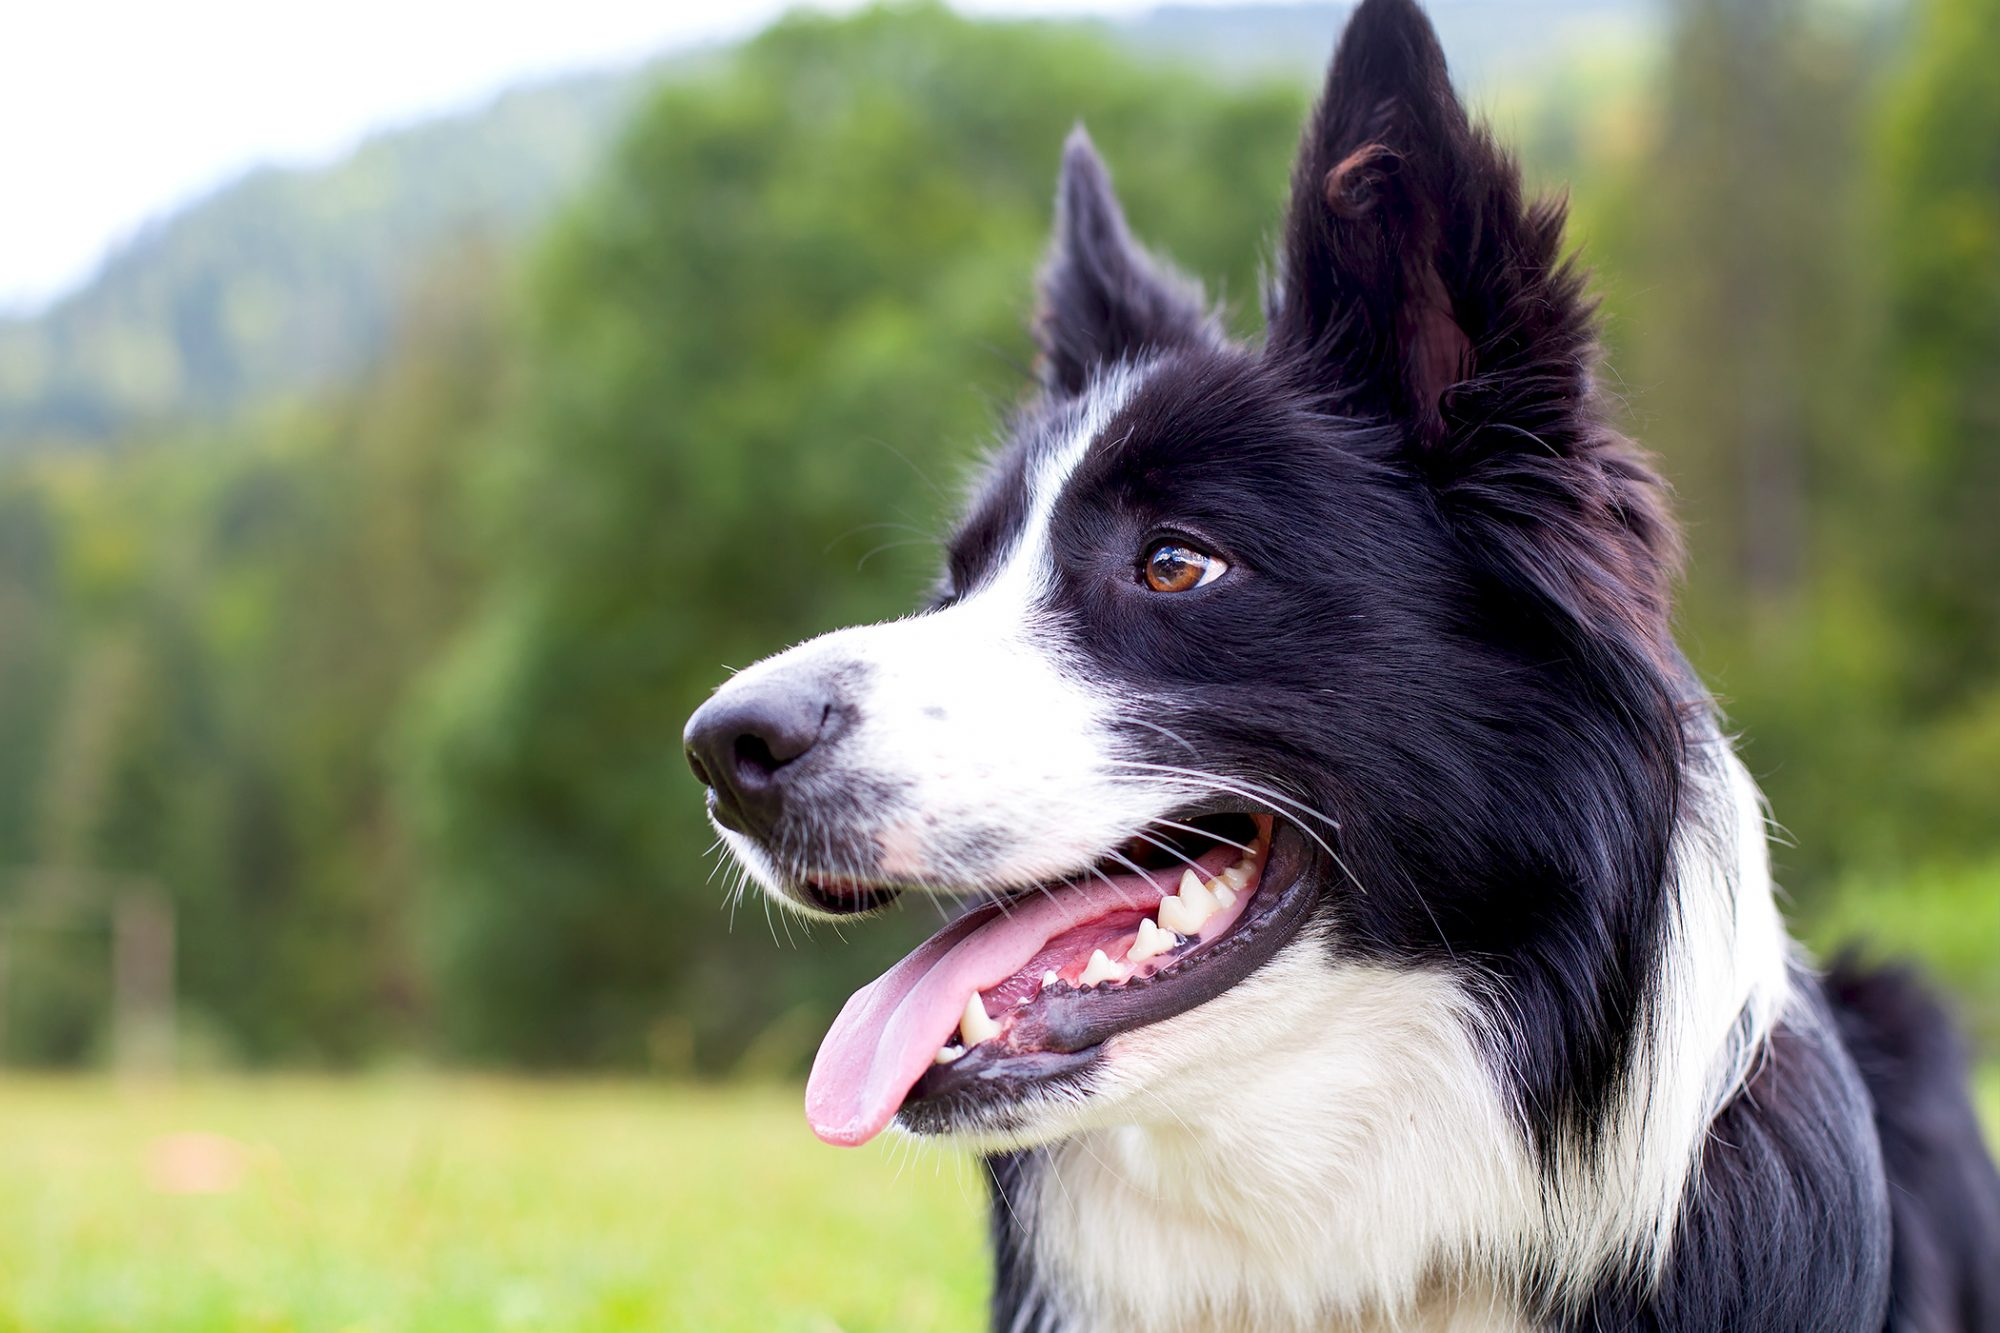 Profile shot of border collie outdoors near grassy field